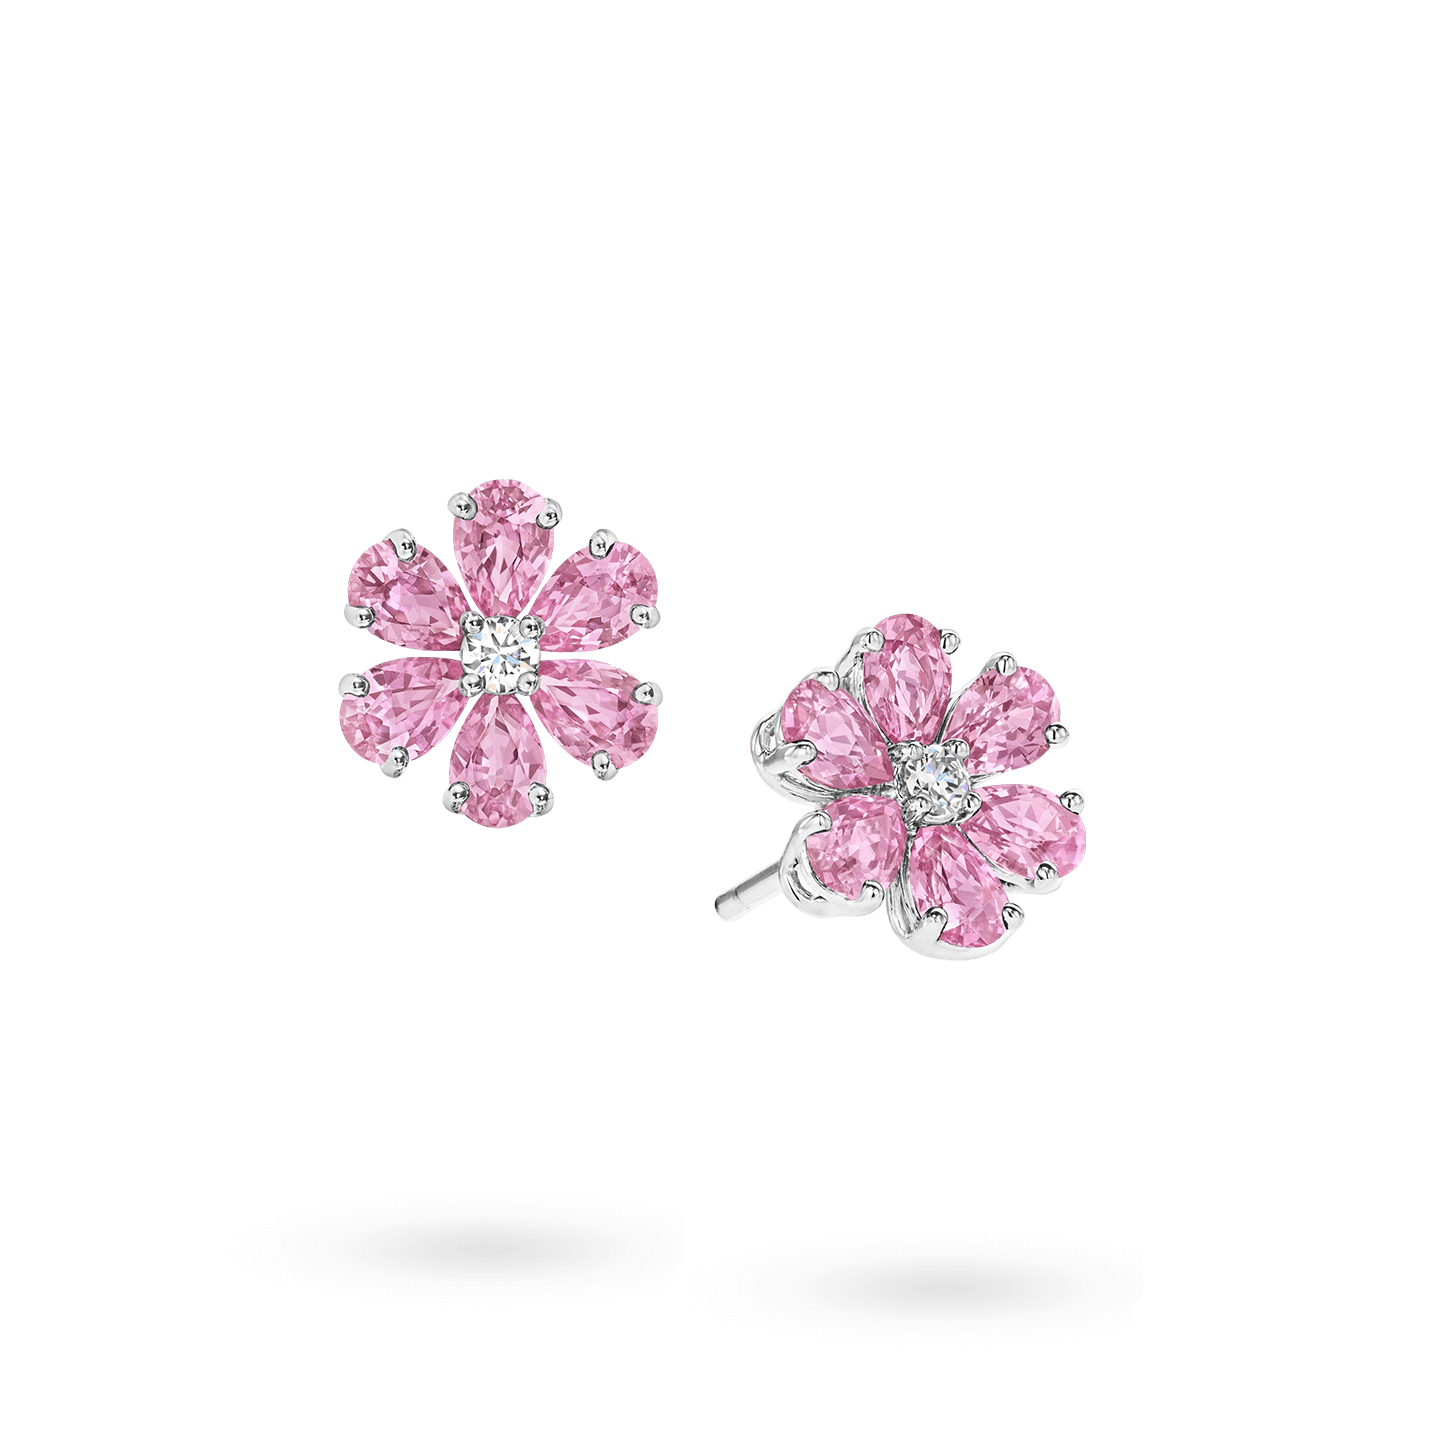 Forget-Me-Not Pink Sapphire and Diamond Earrings, Product Image 2